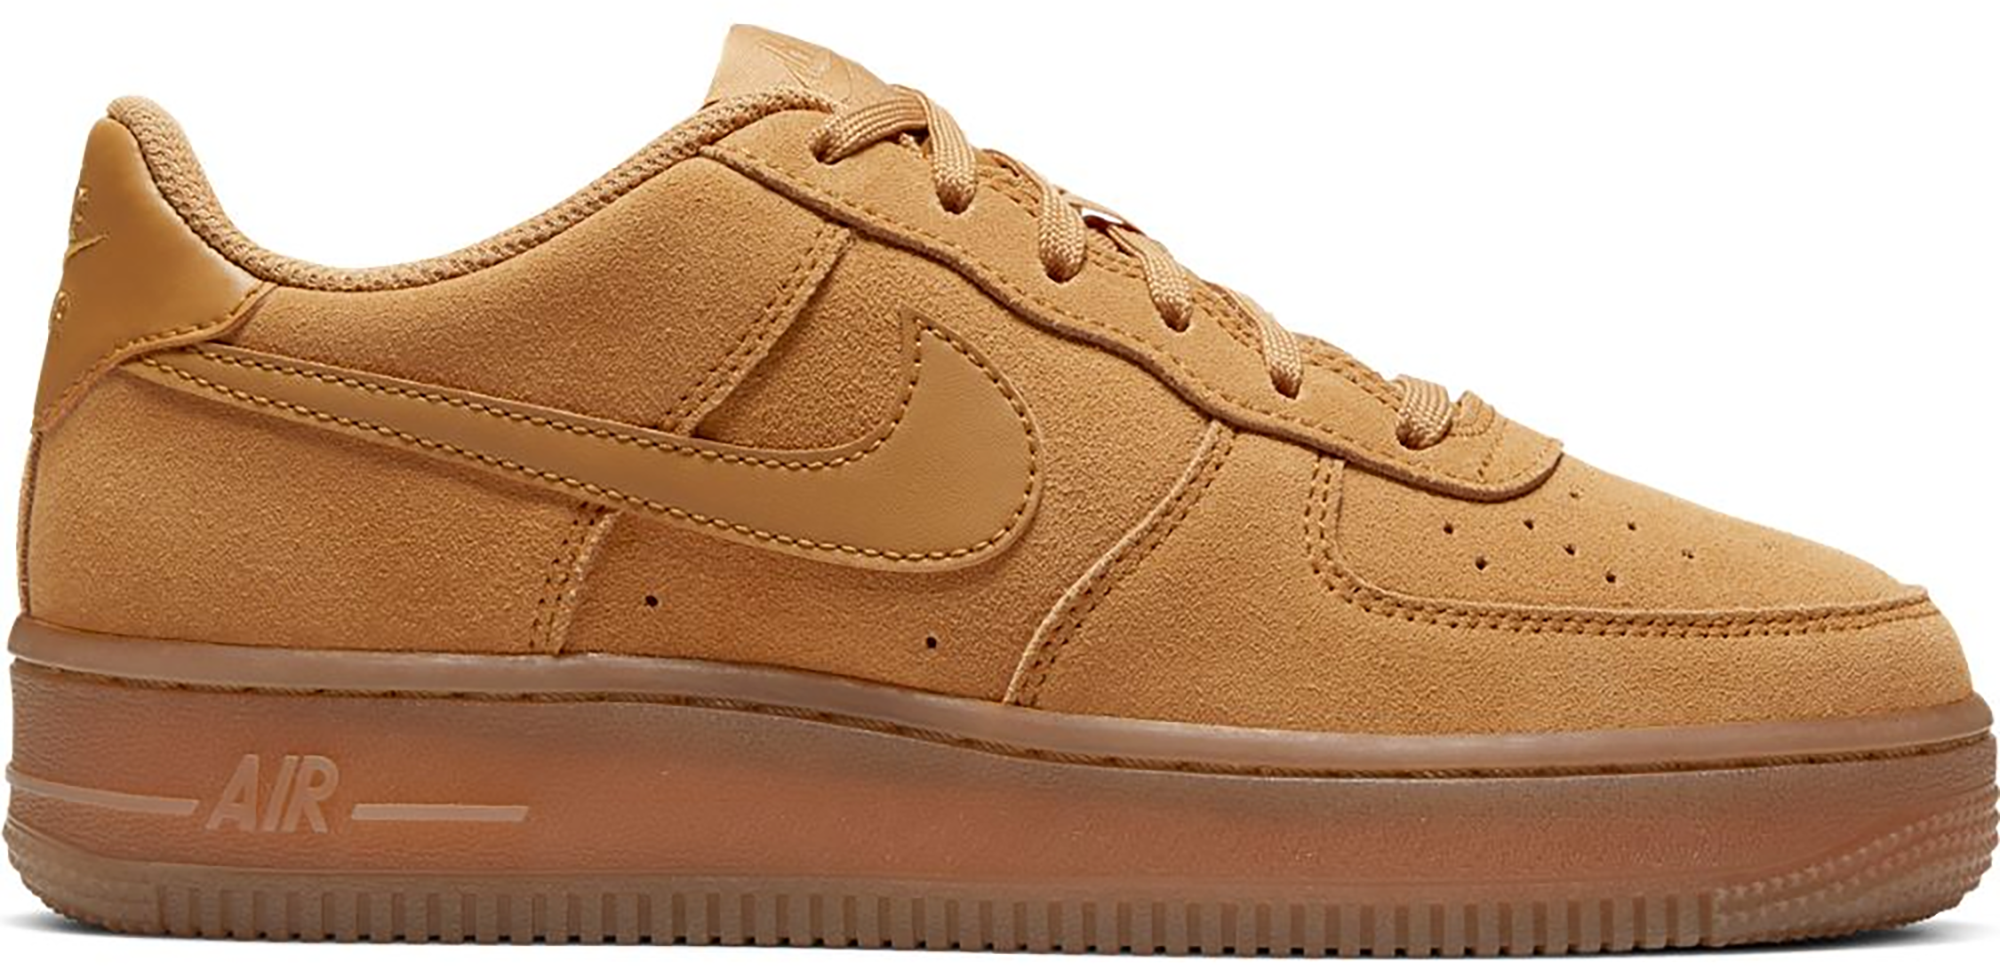 Nike Air Force 1 Low Wheat 2019 (GS